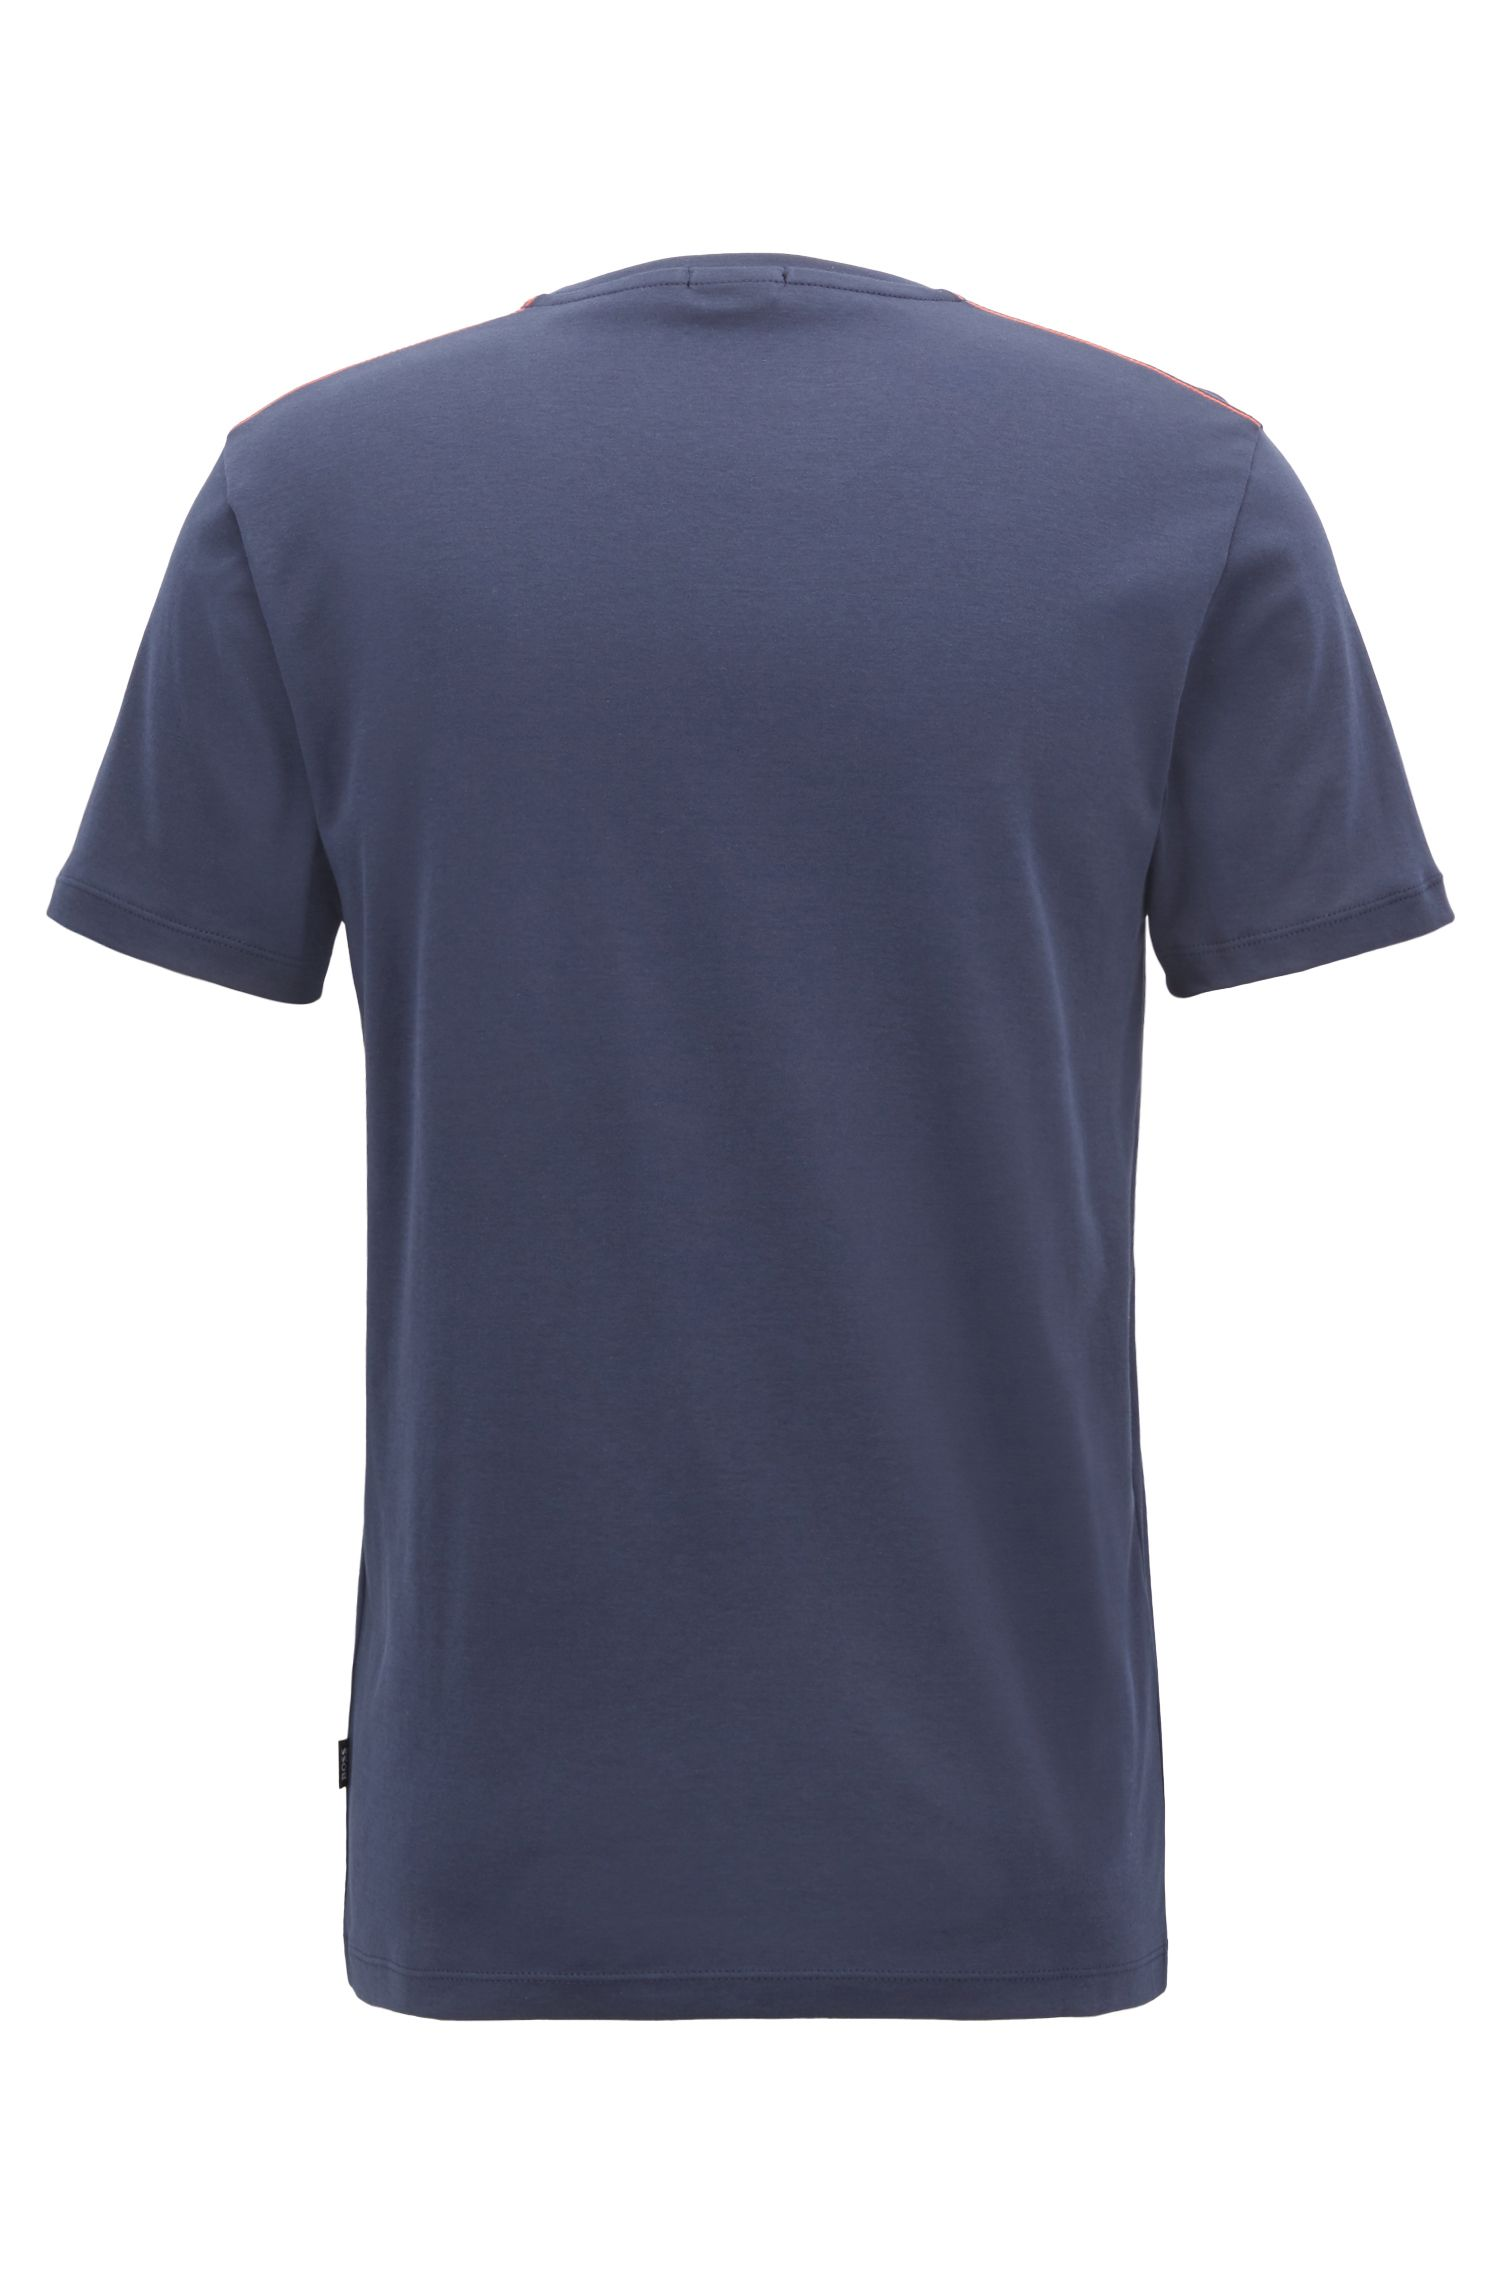 T-shirt Slim Fit en coton interlock à imprimé marin